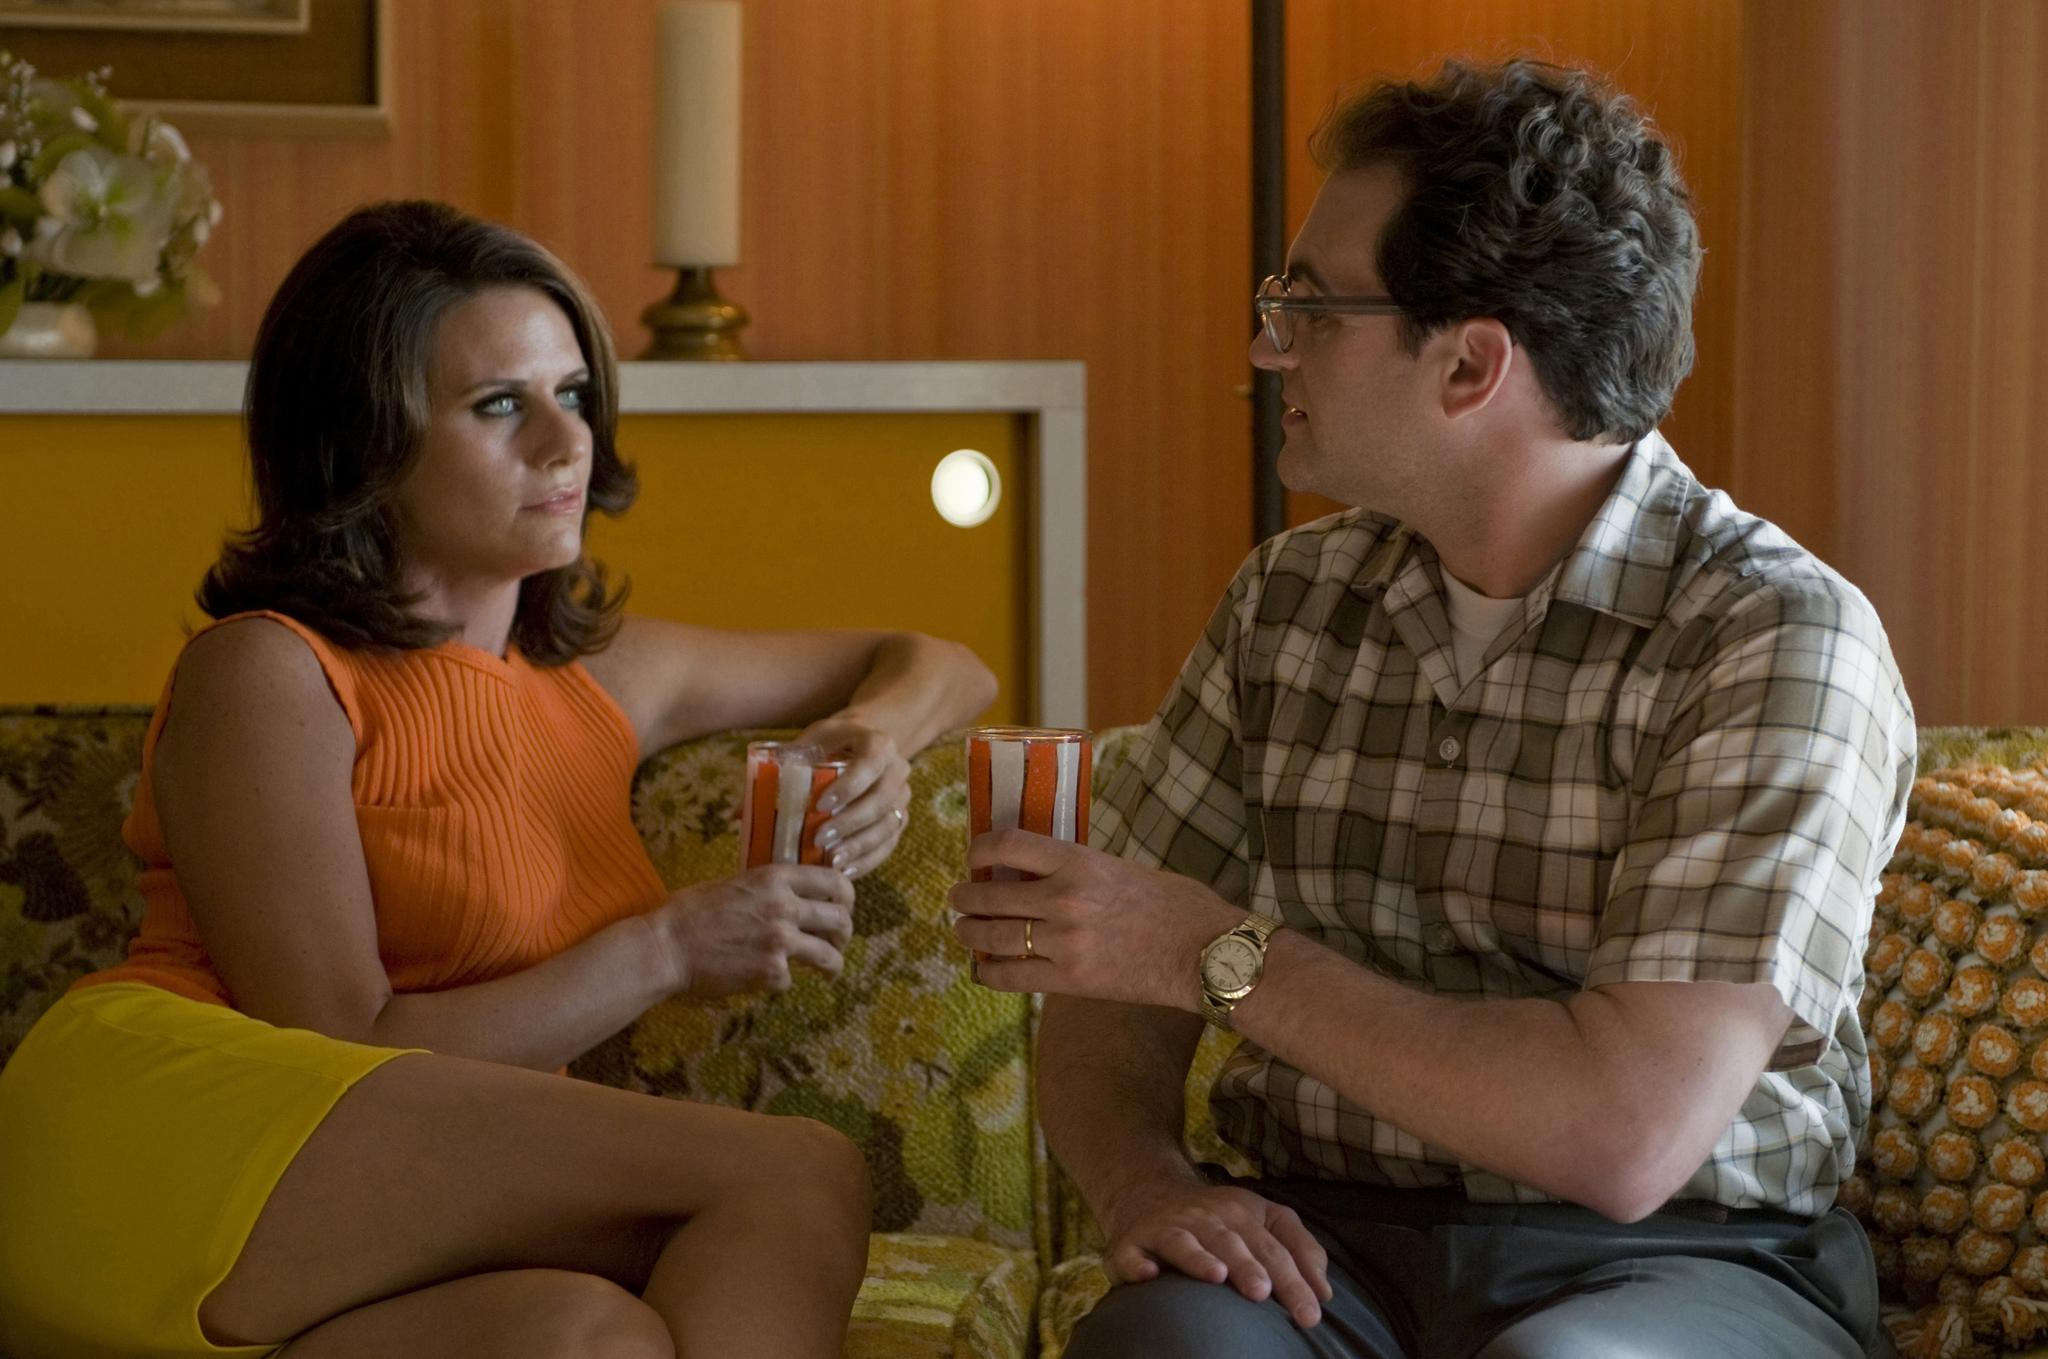 still-of-amy-landecker-and-michael-stuhlbarg-in-a-serious-man-(2009)